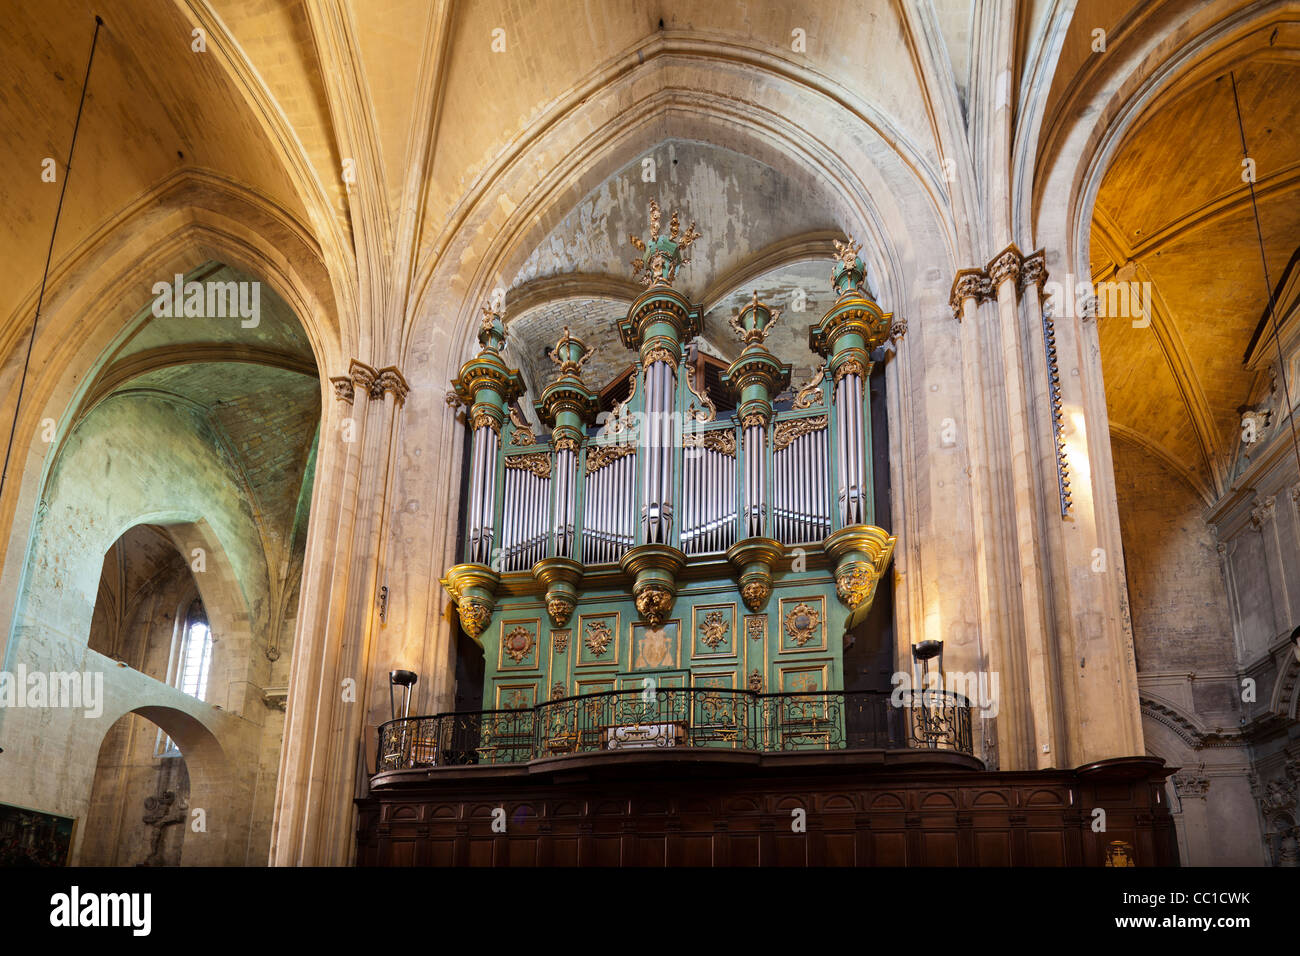 pipe organ aix cathedral cath drale saint sauveur d 39 aix stock photo royalty free image. Black Bedroom Furniture Sets. Home Design Ideas